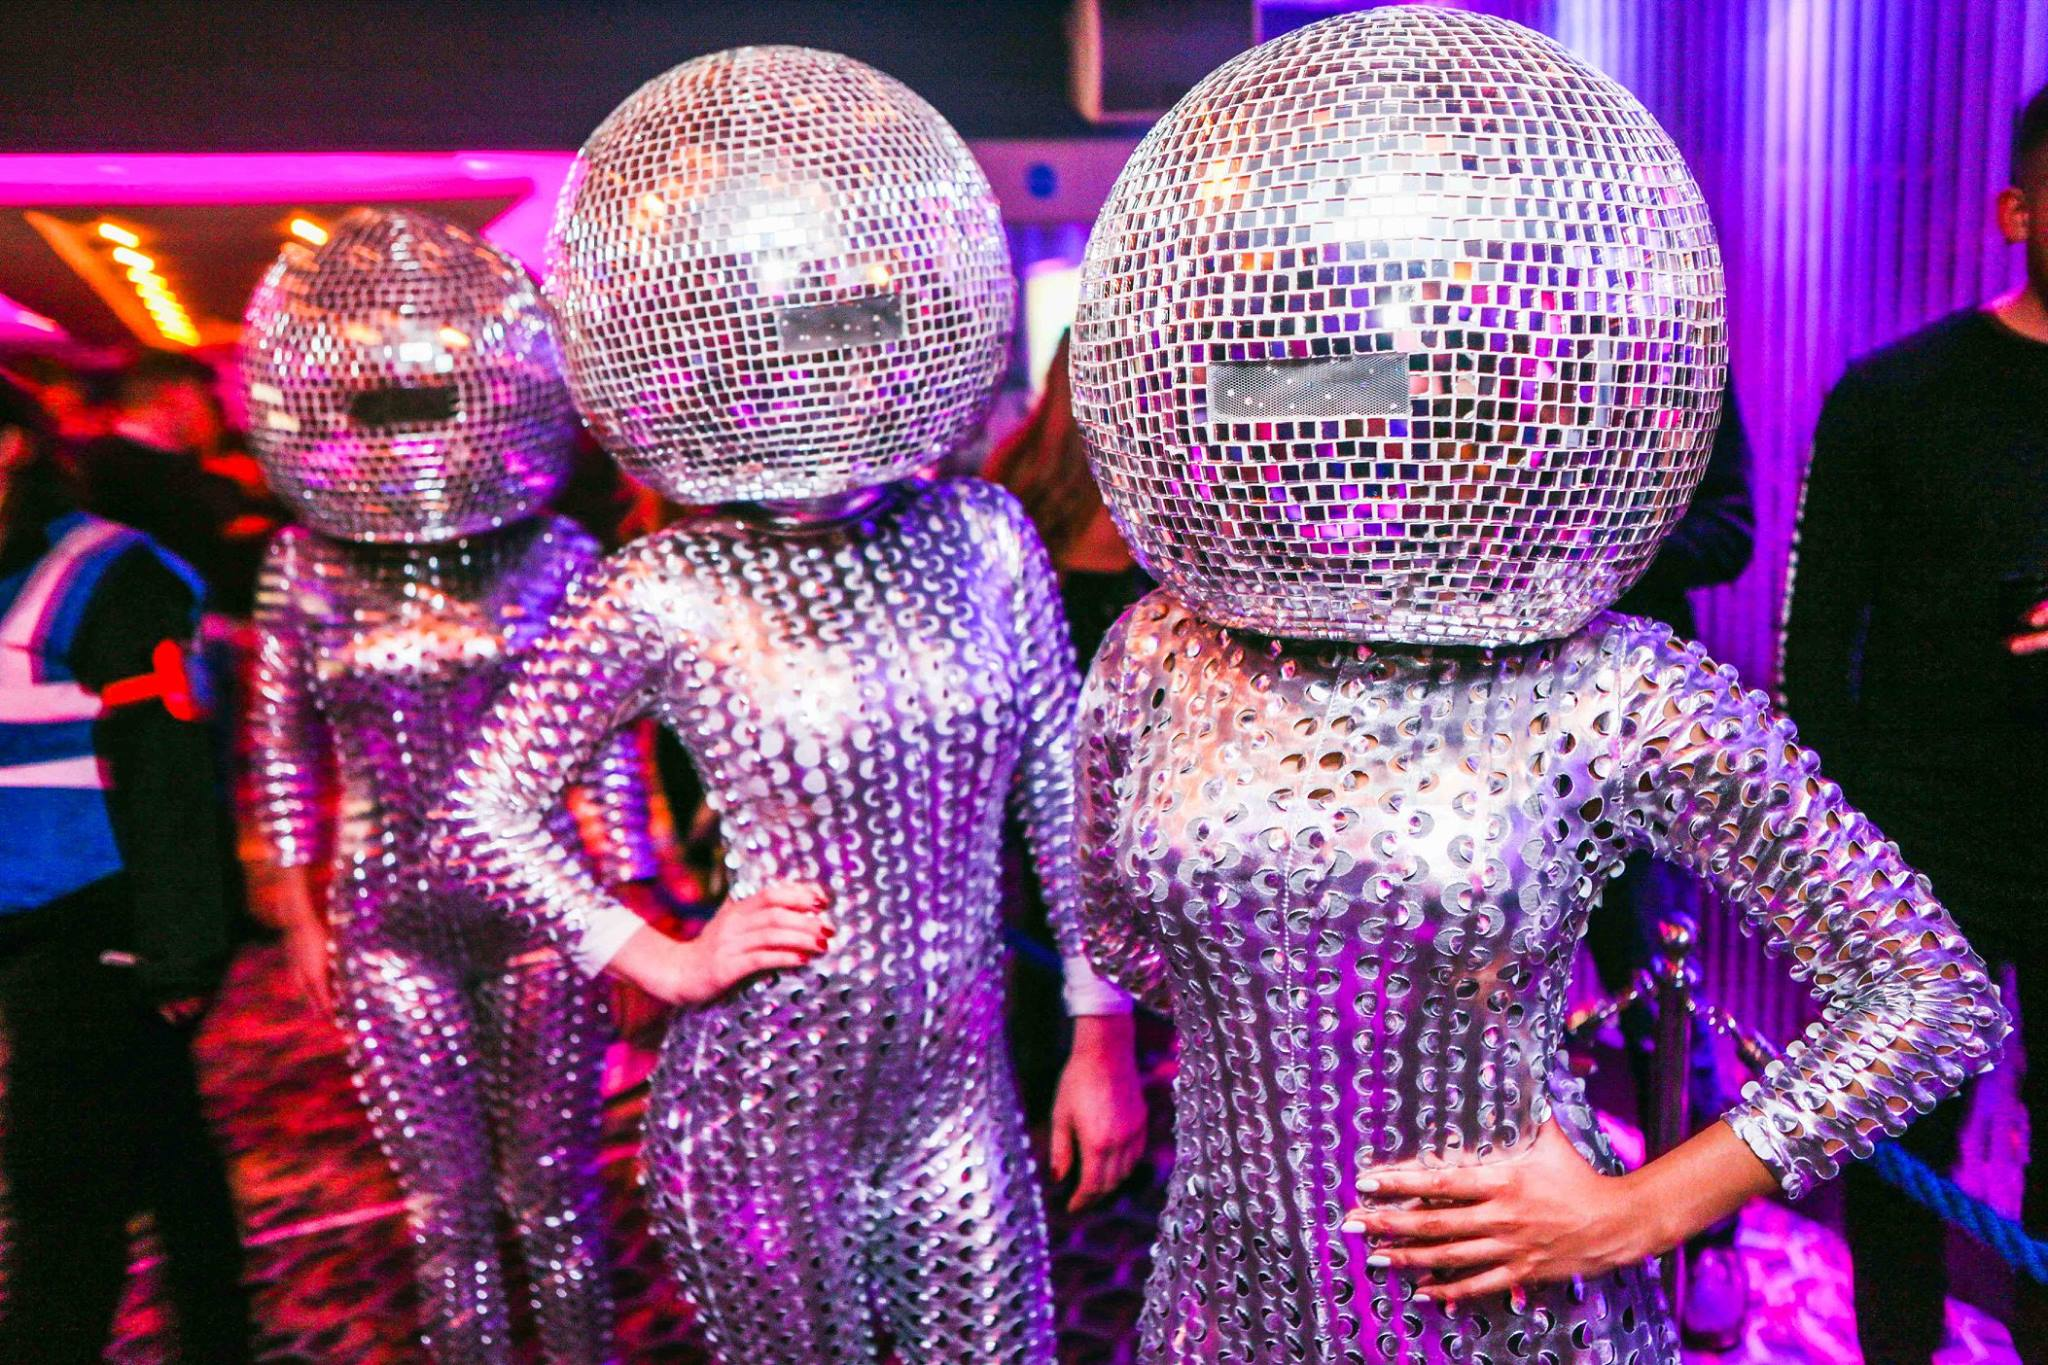 Disco Heads to meet and greet or dance with your guests